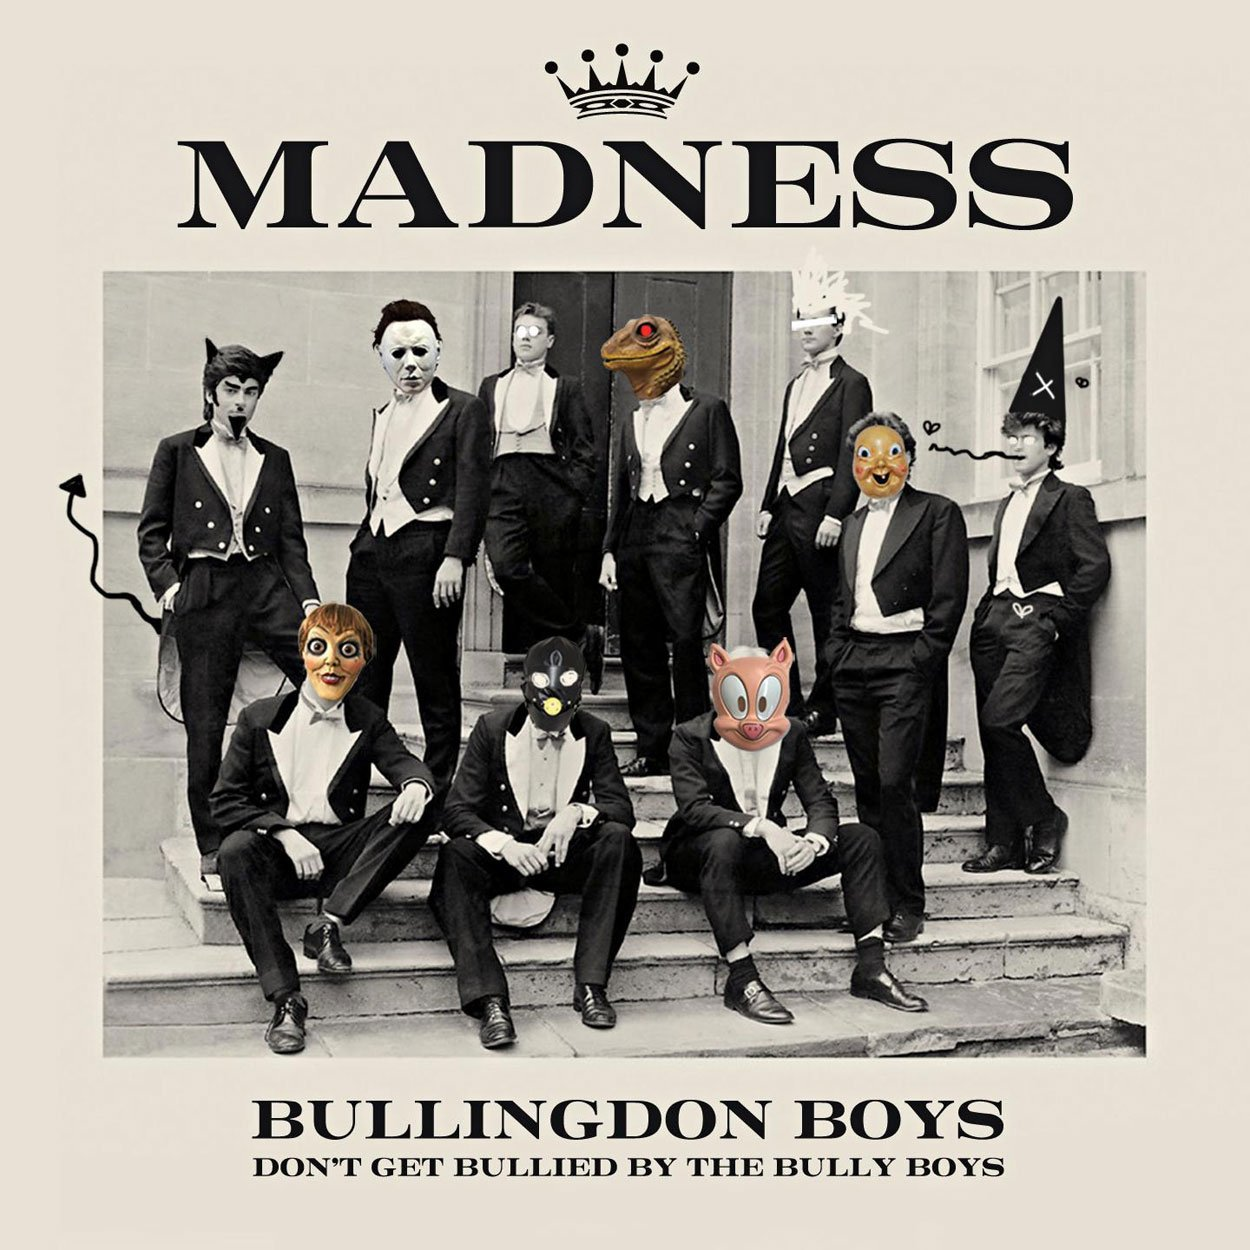 MADNESS release' first new music since 2016 with new single 'Bullingdon Boys' - Listen Now